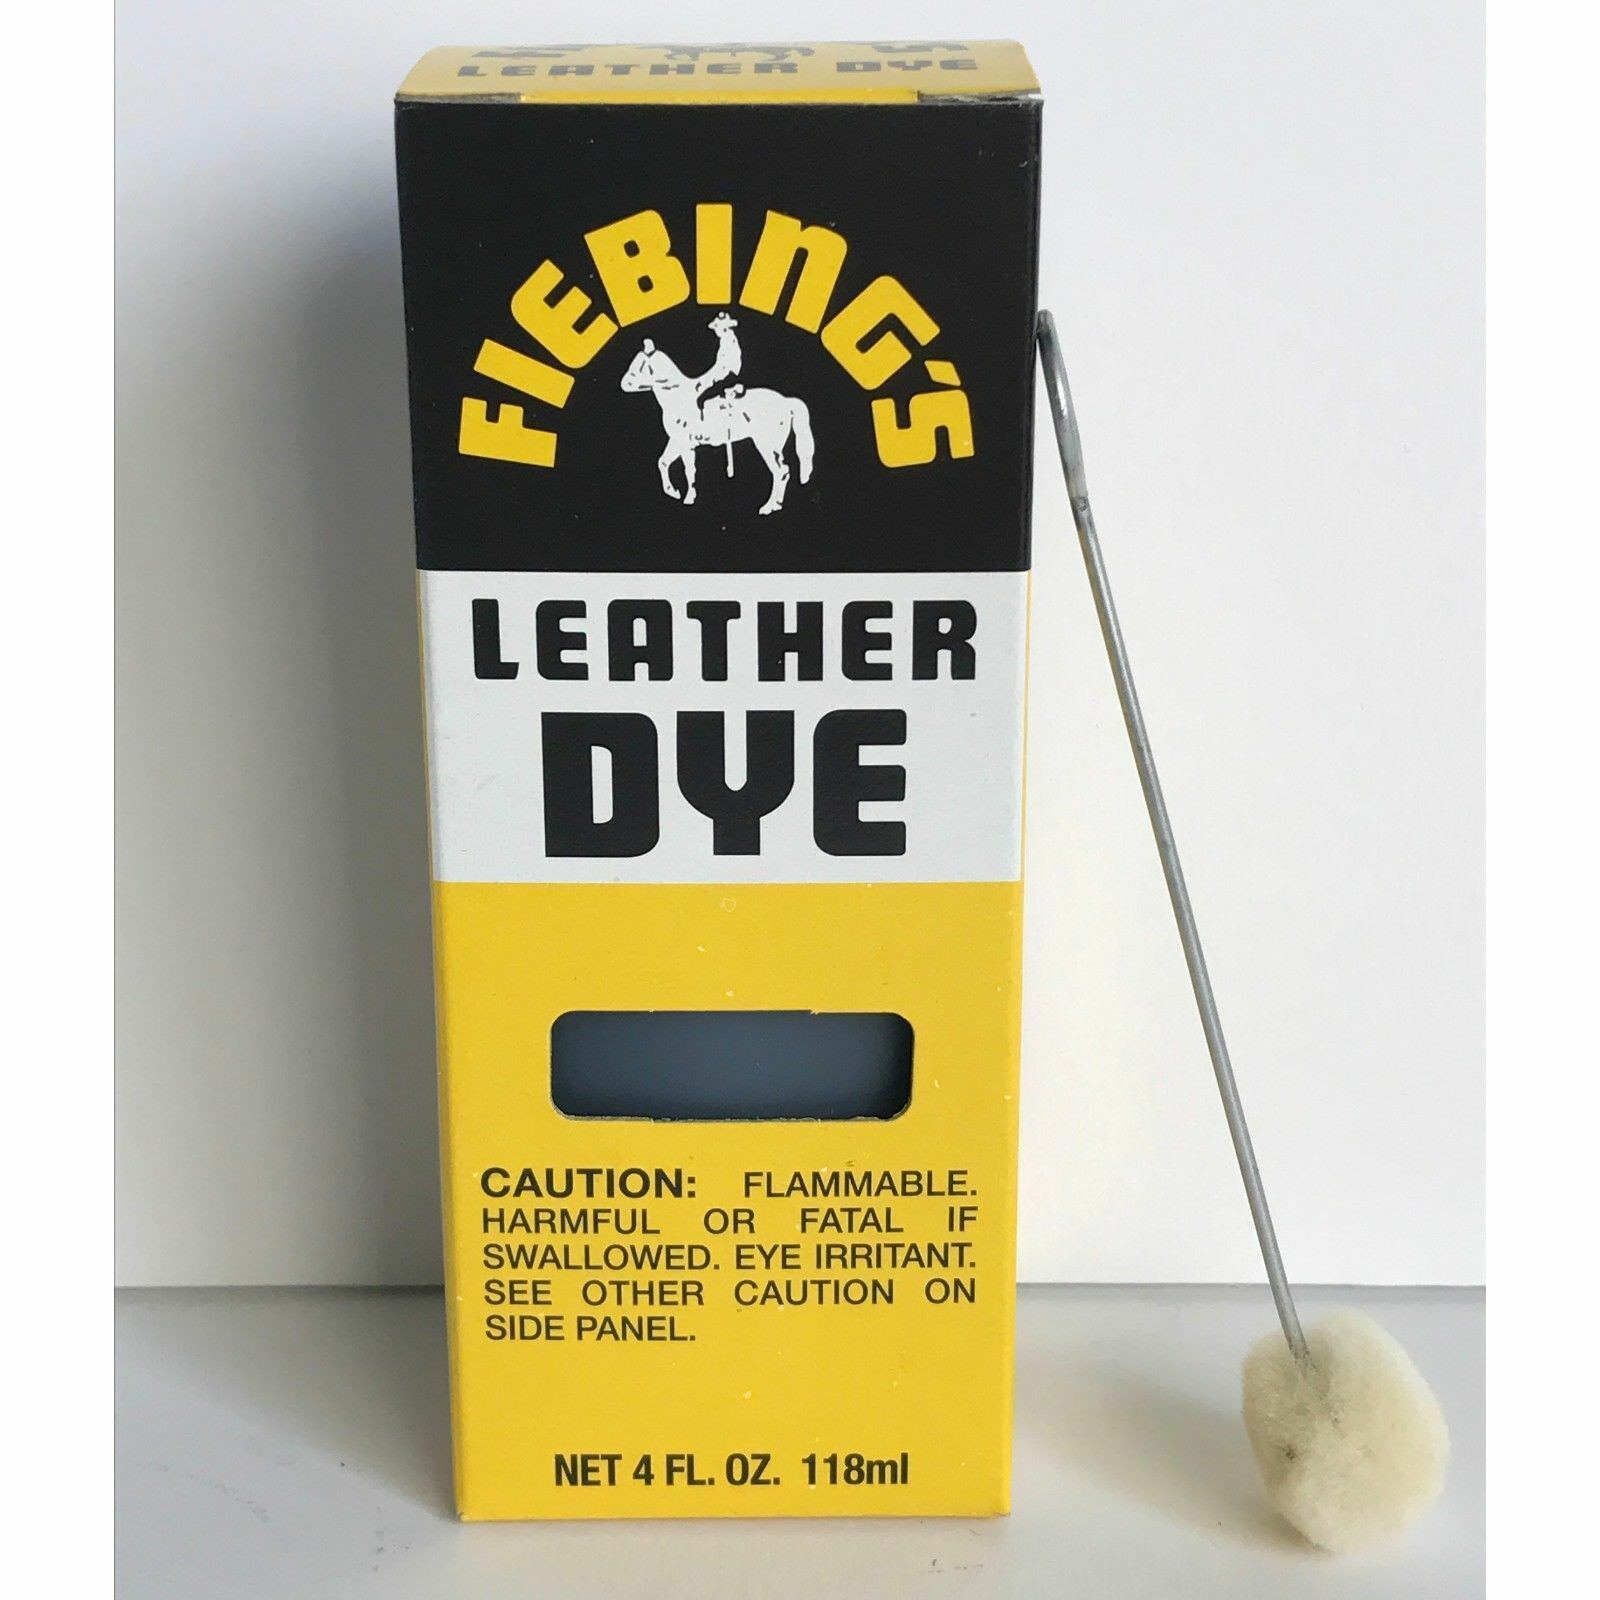 Fiebing's Leather Dye W/ Applicator For Shoes, Boots, Bags,